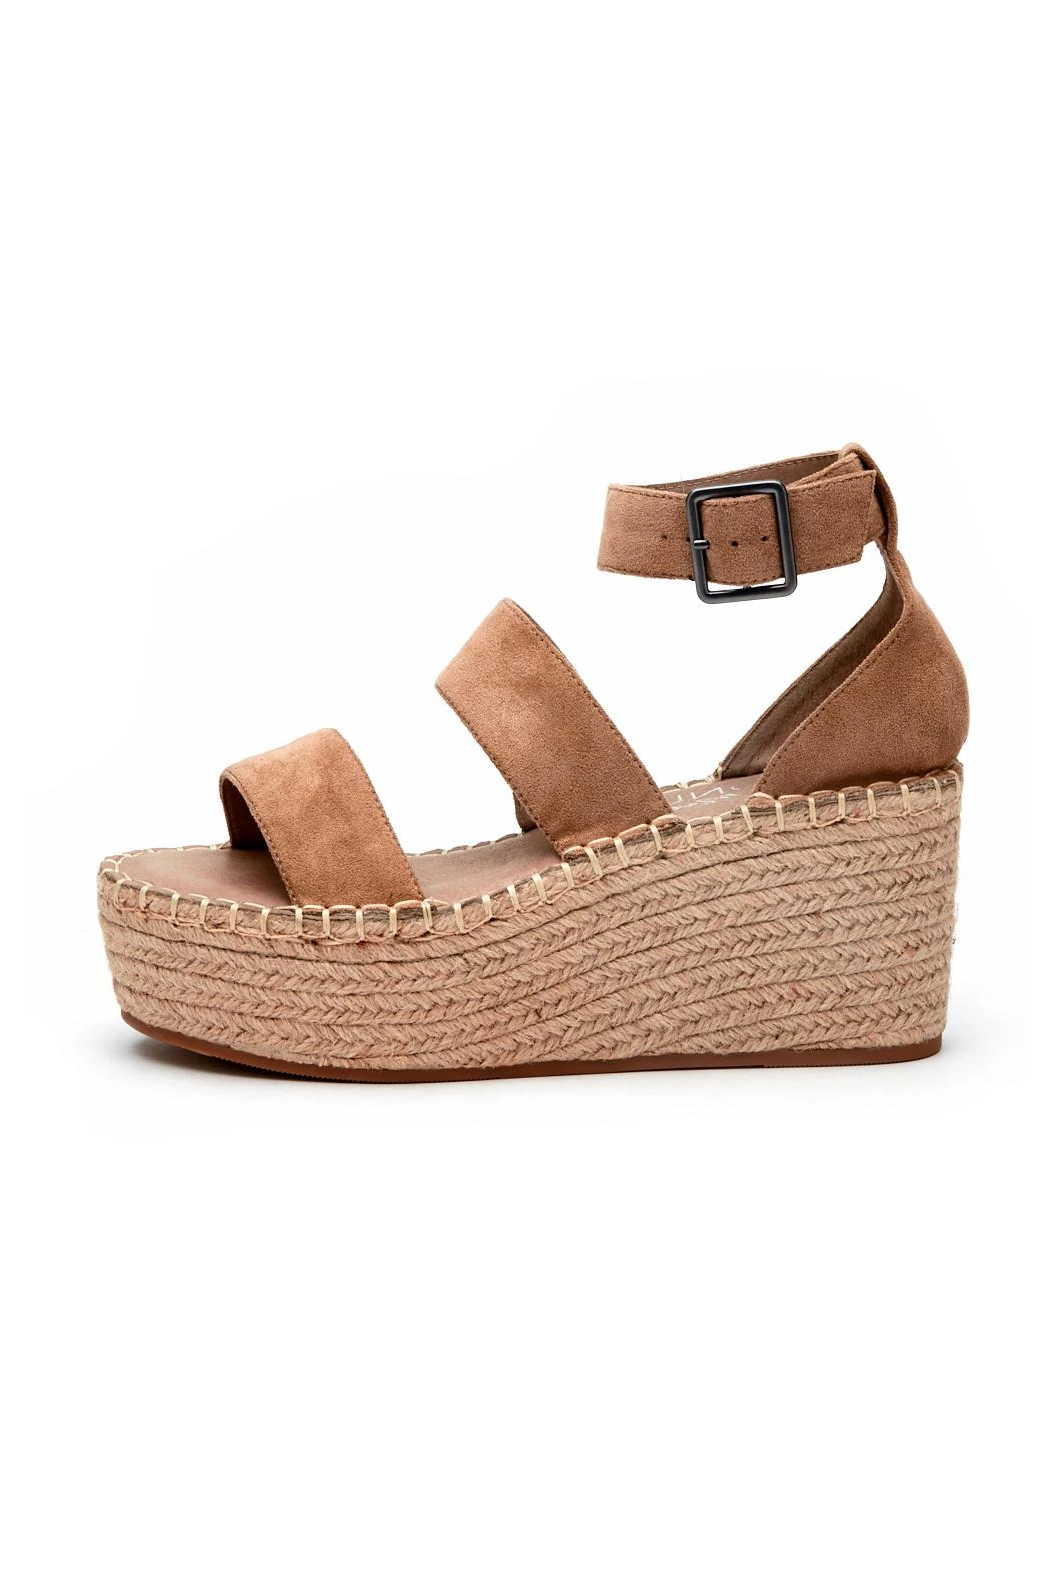 Coconuts by Matisse Soire Platform Wedge - Main Image